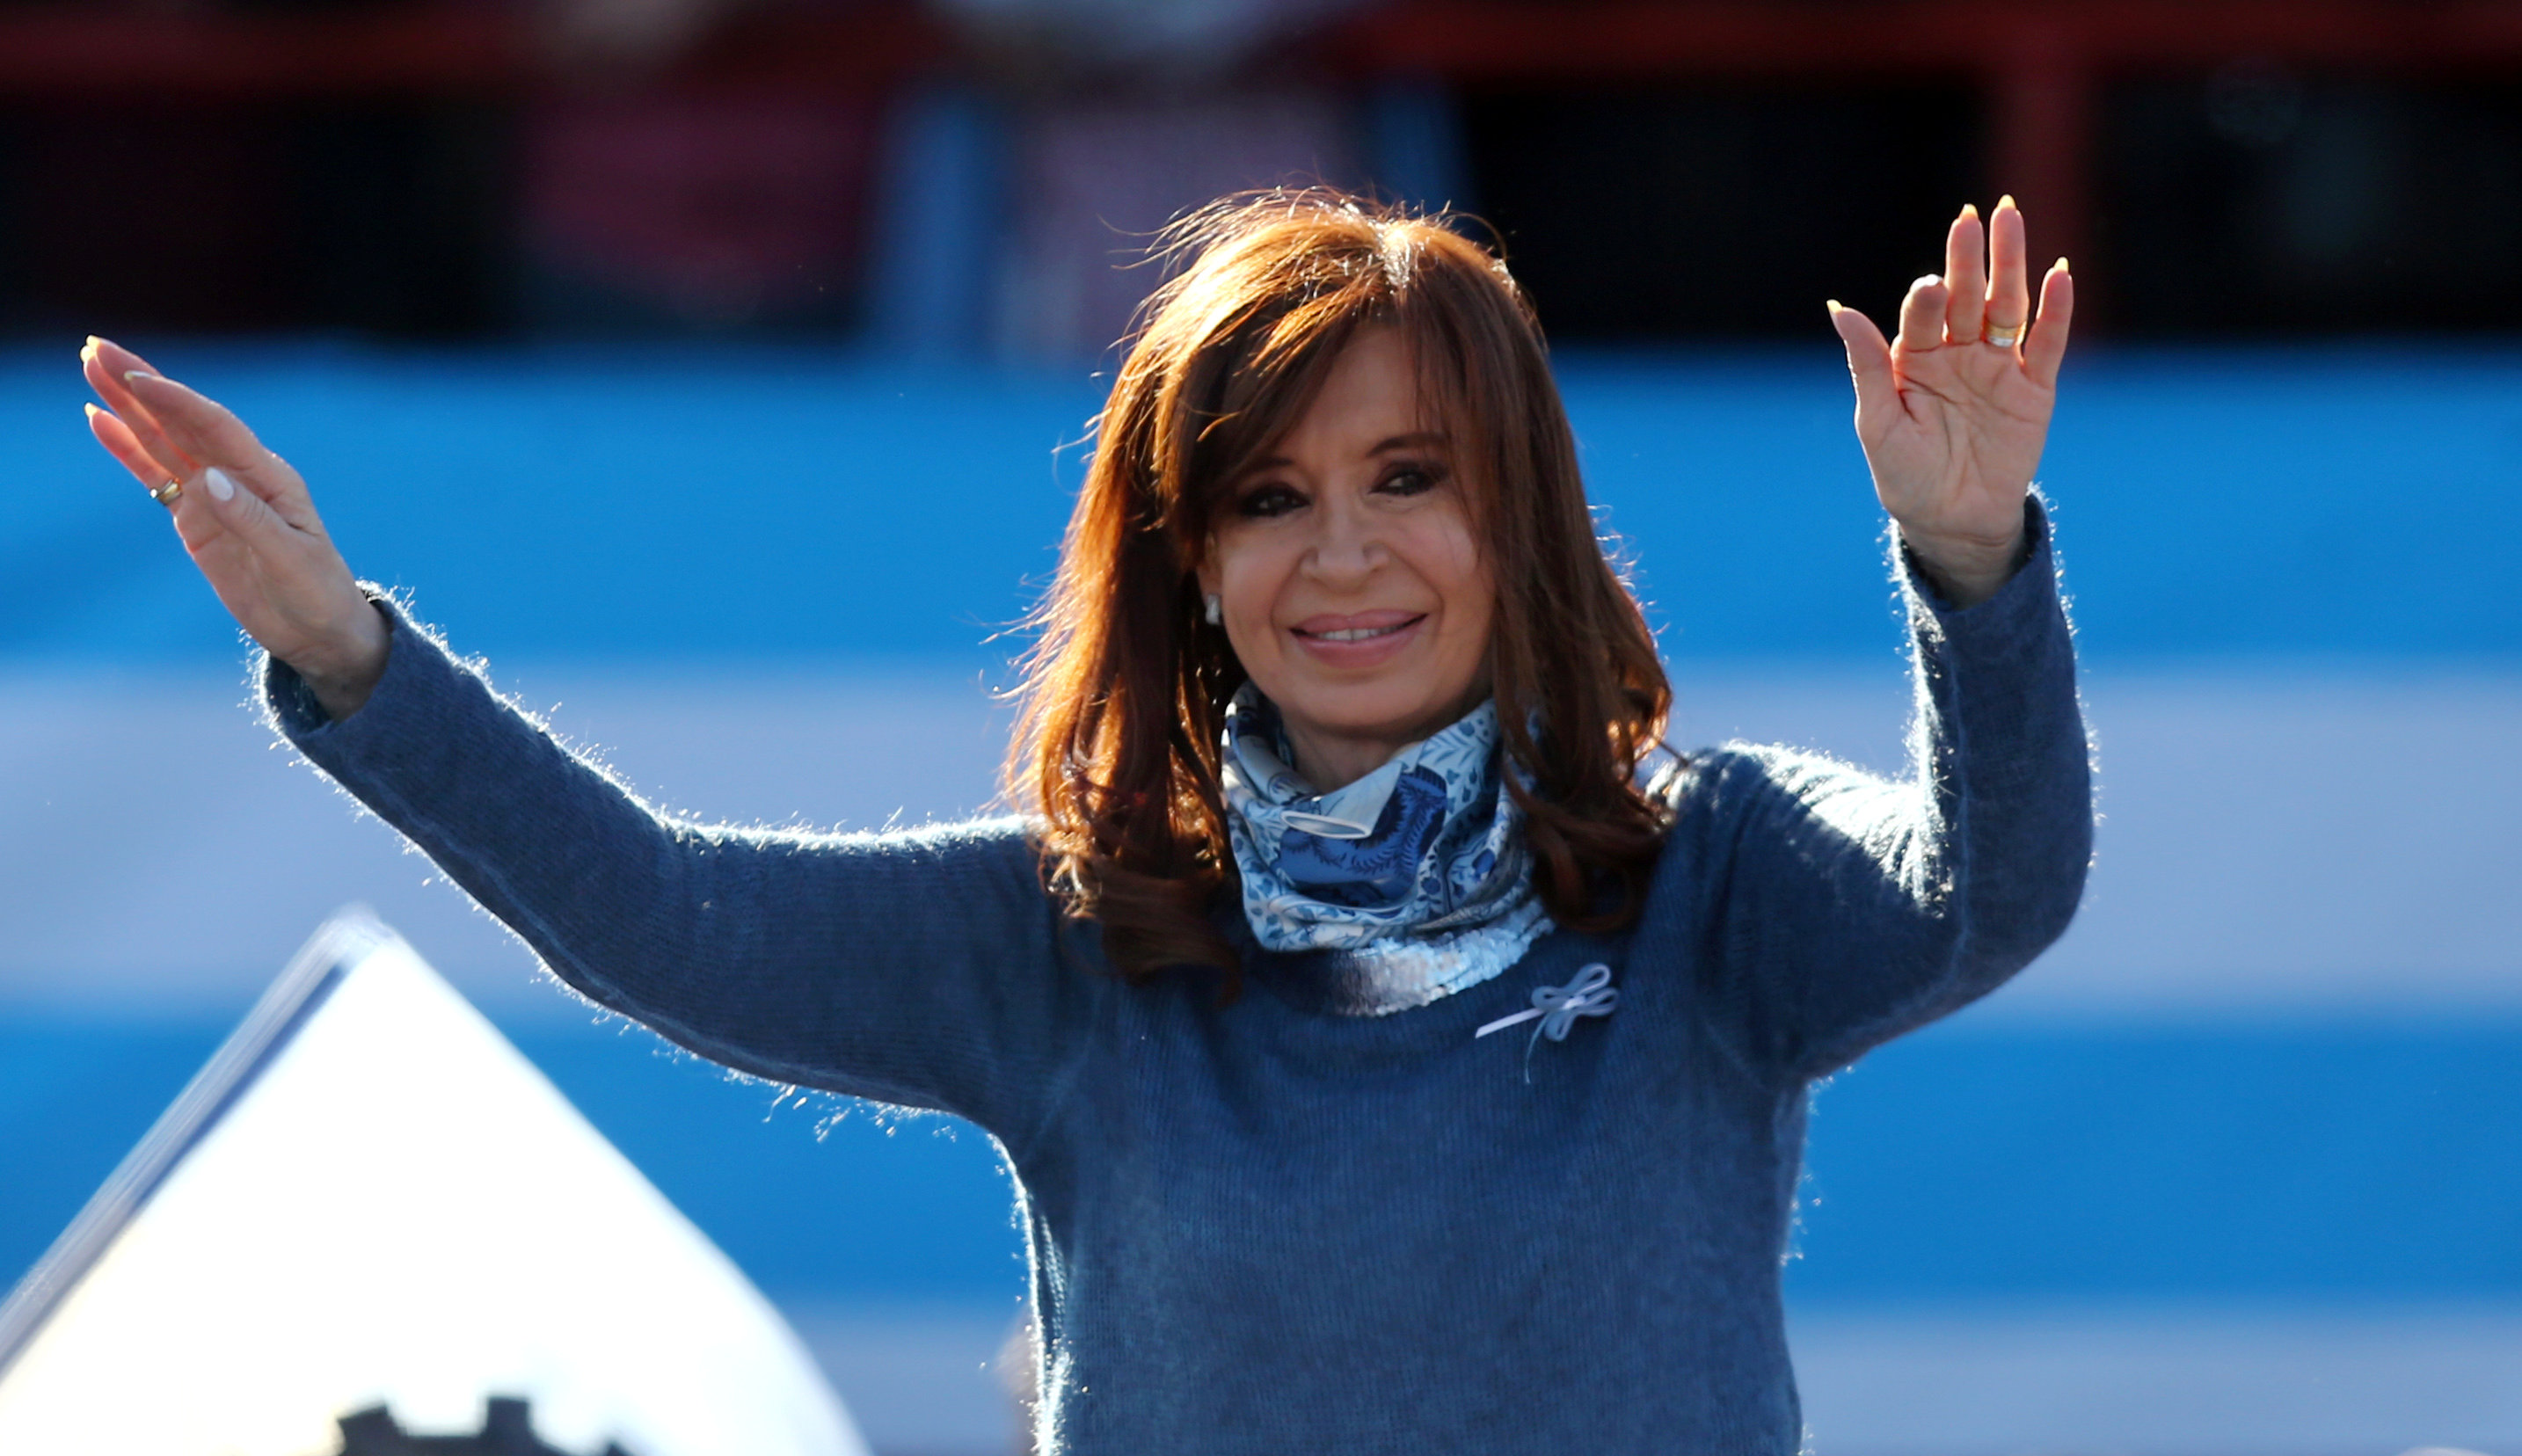 Fernandez and Macri Nearly Tied in Argentina's Senate Primary